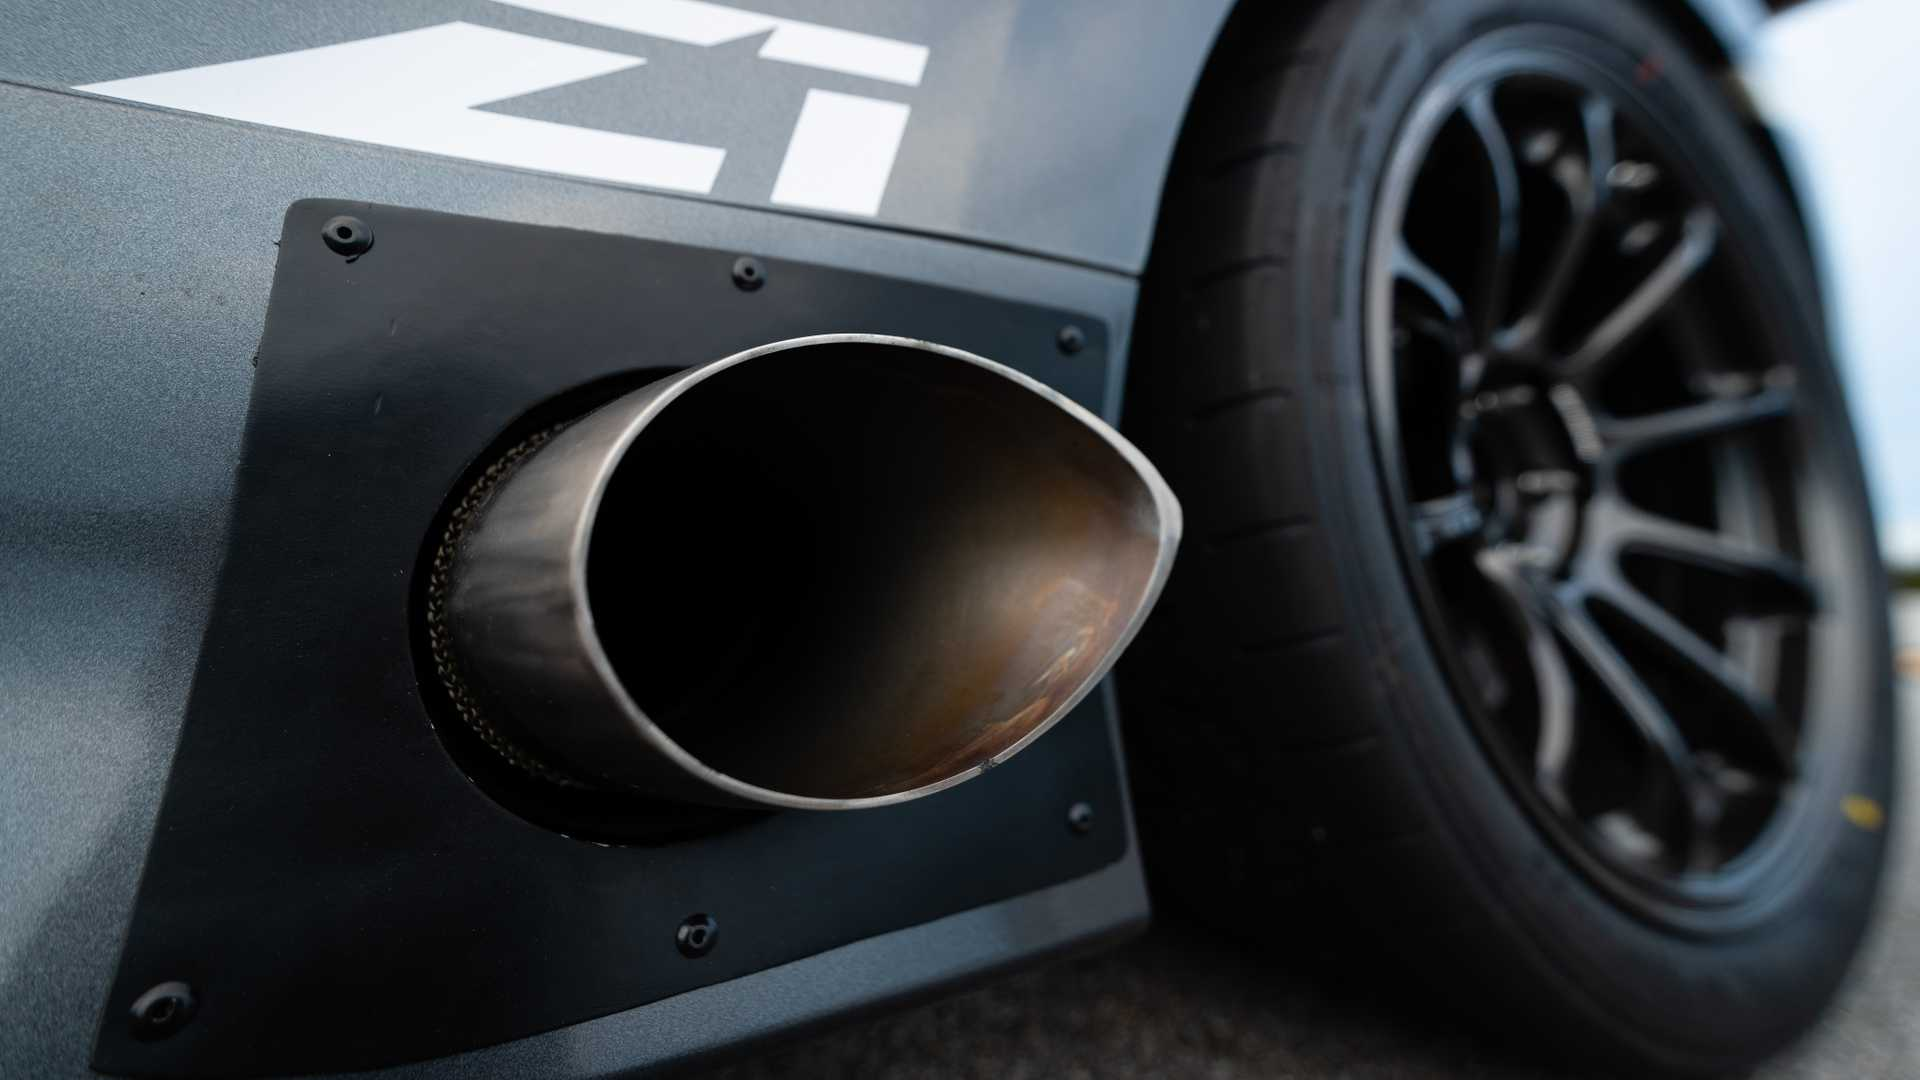 Z1 Motorsports Nissan 370z Boasts Side Exit Exhaust System Extreme Rear Wing Autoevolution